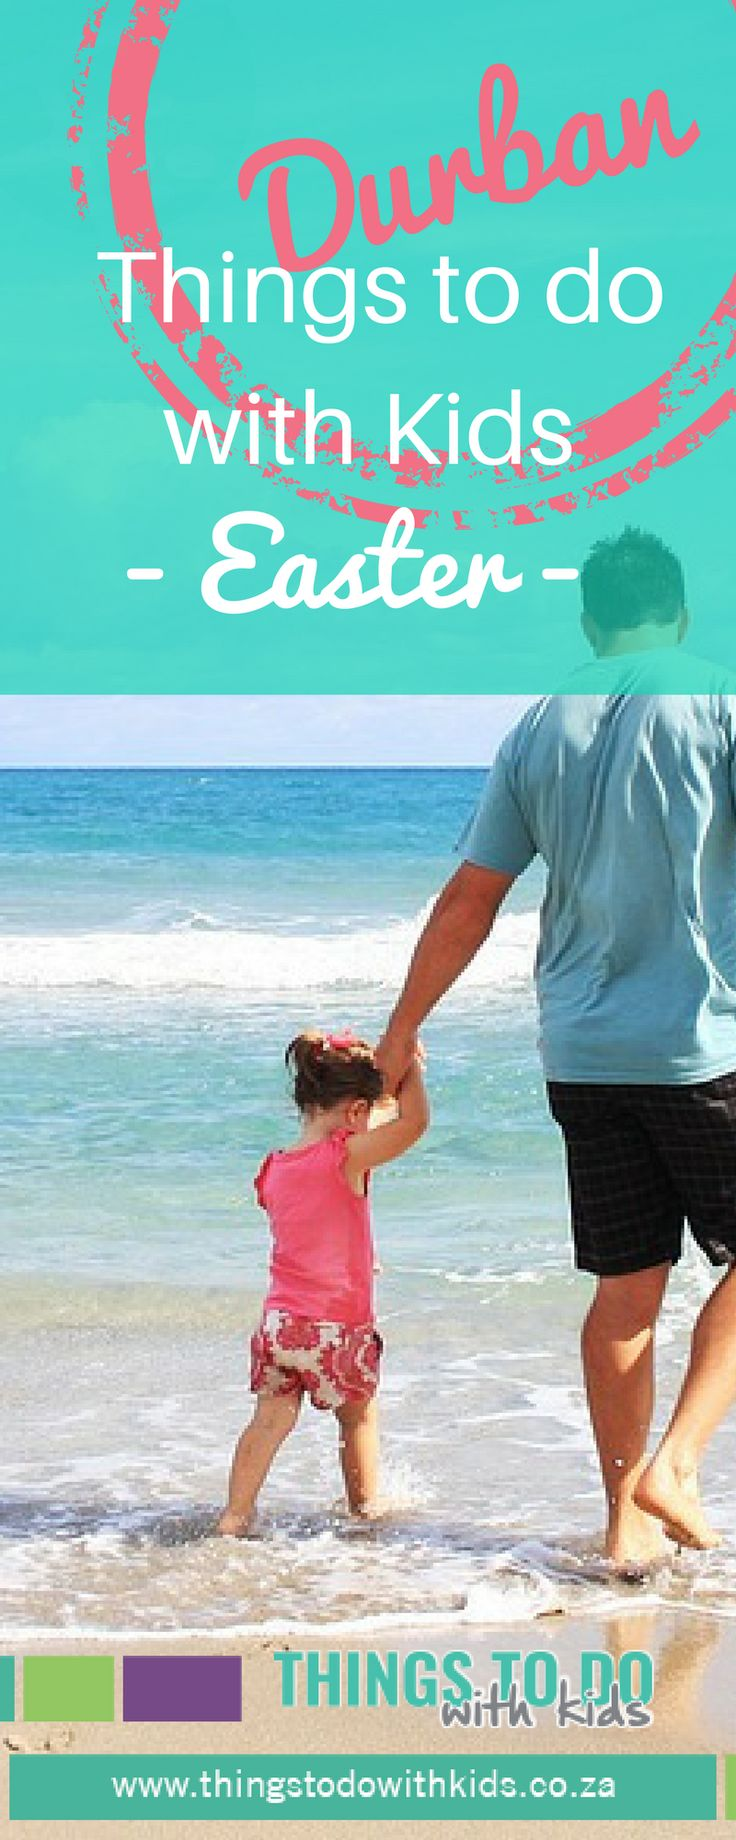 Activities & Excursions in and around Durban | Easter Holiday Entertainment | Durban | South Africa | Things to do with Kids in Durban | Family Getaway to Durban